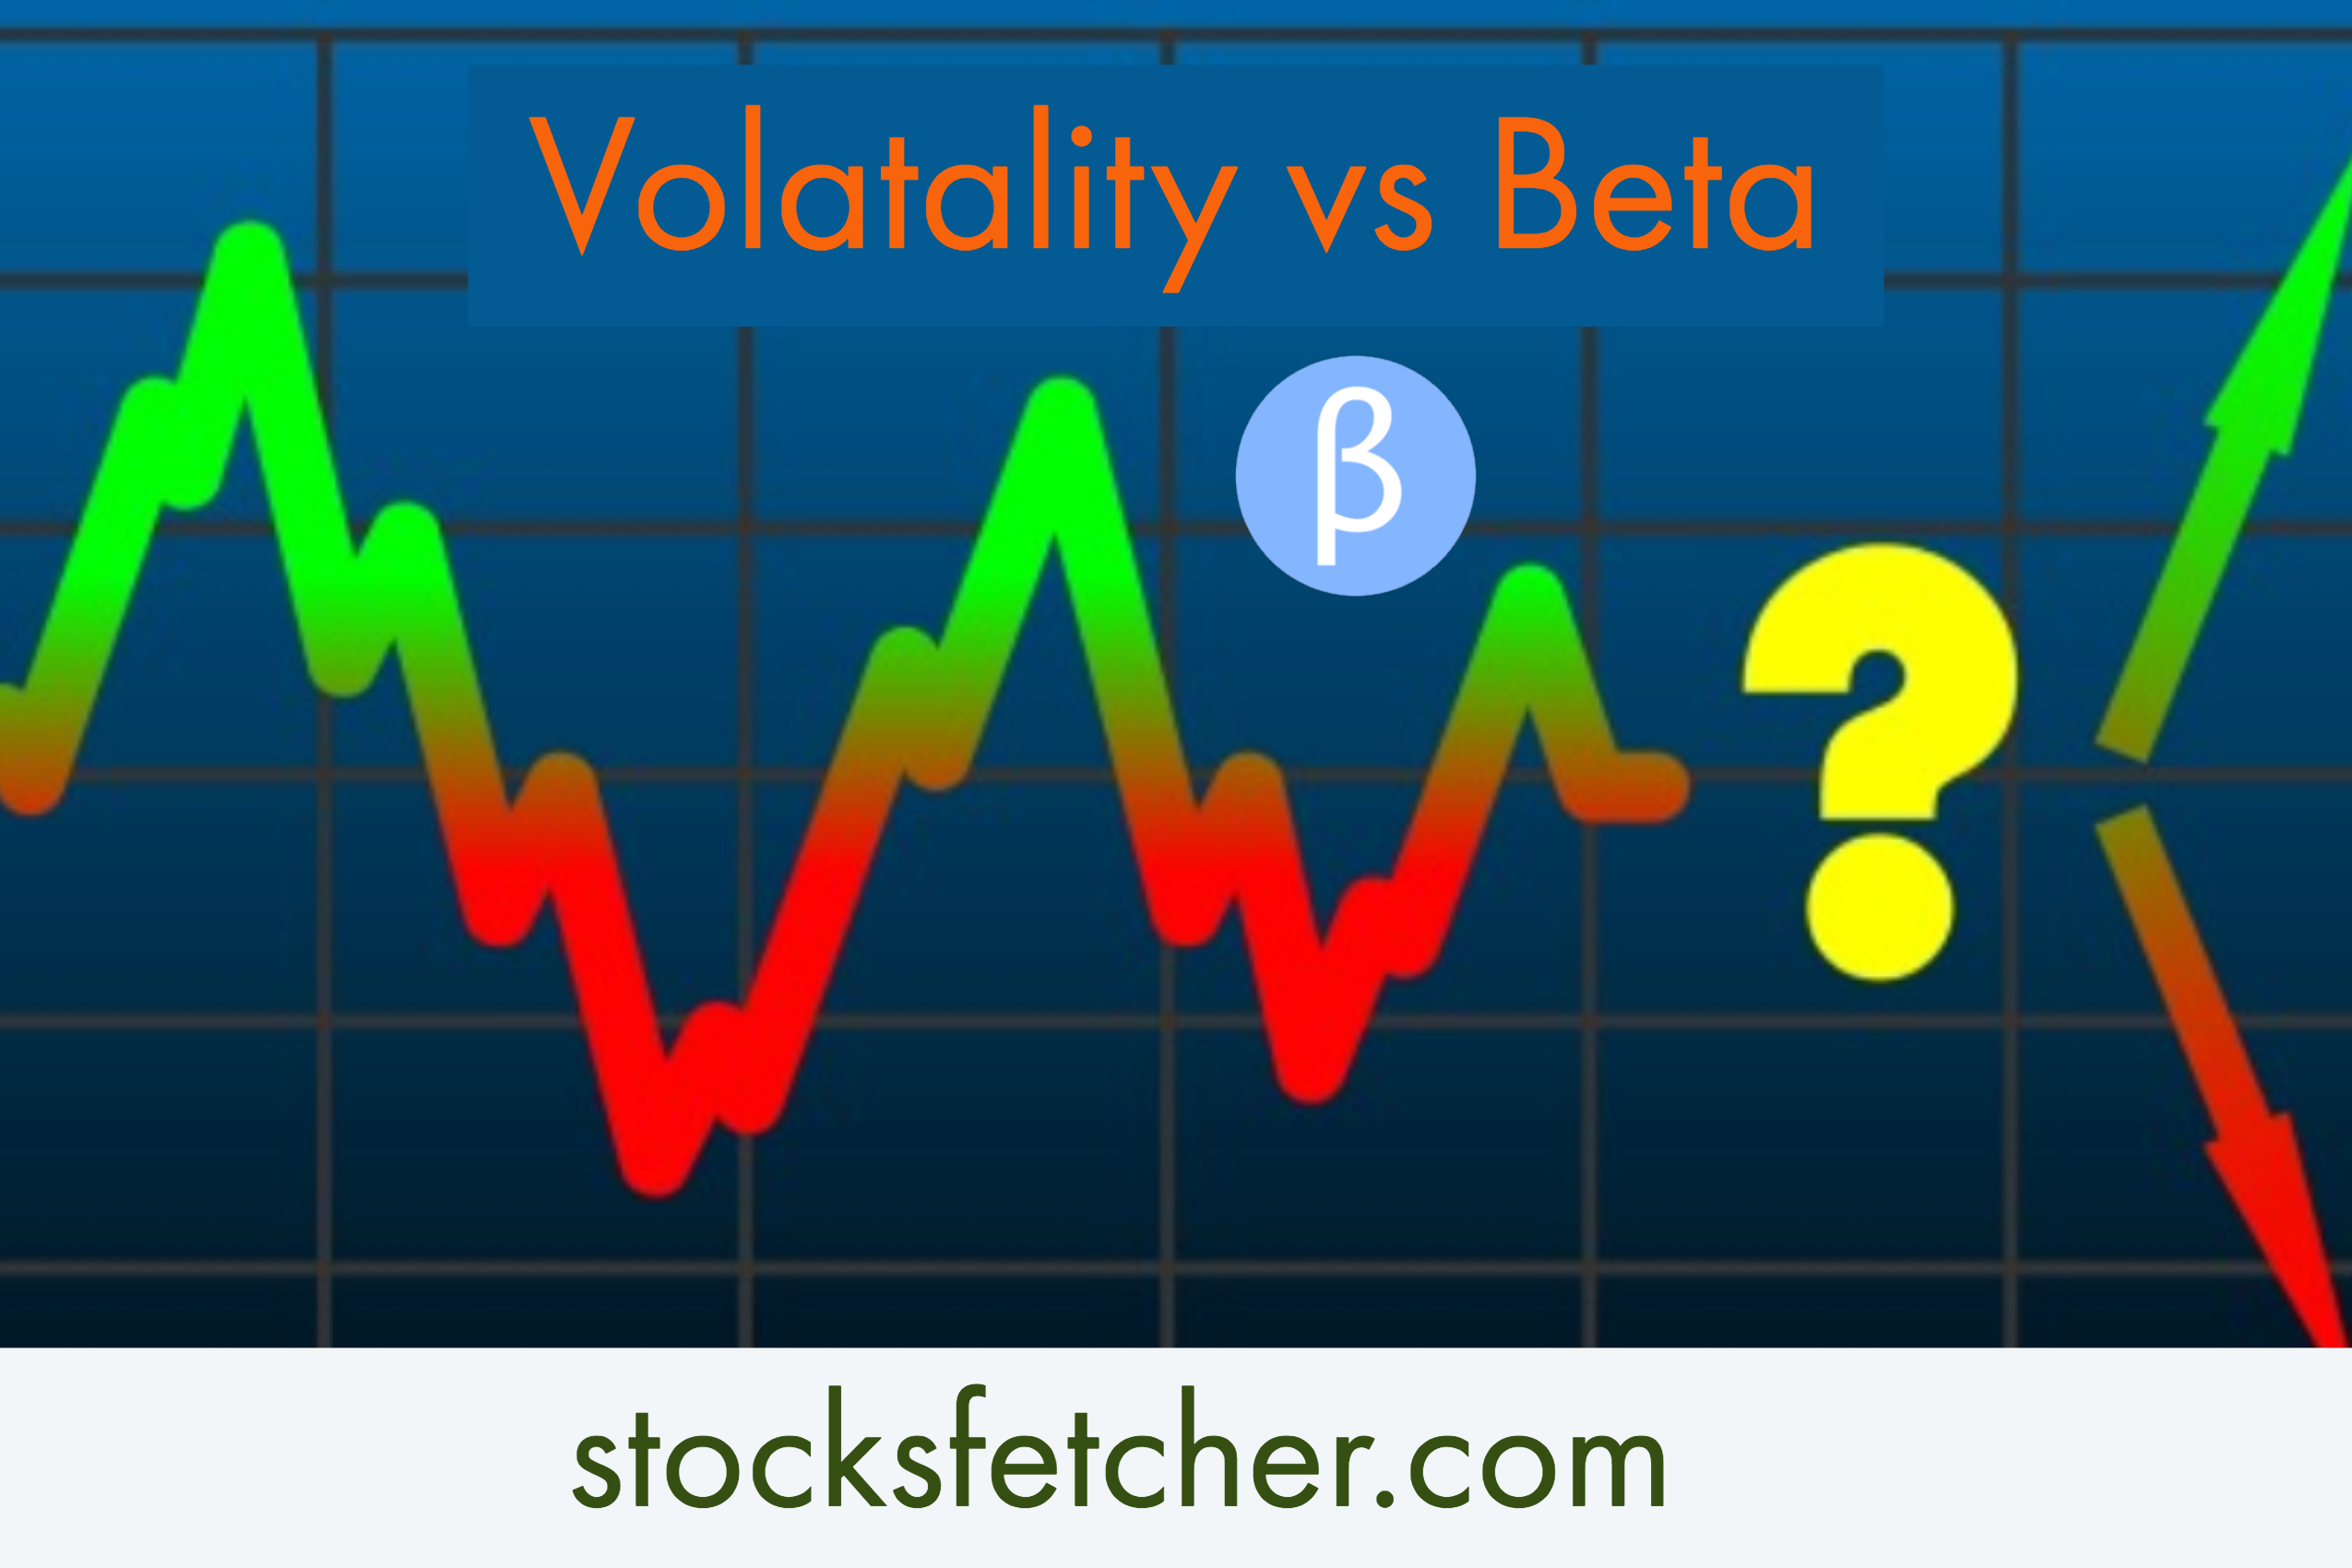 Volatility vs Beta